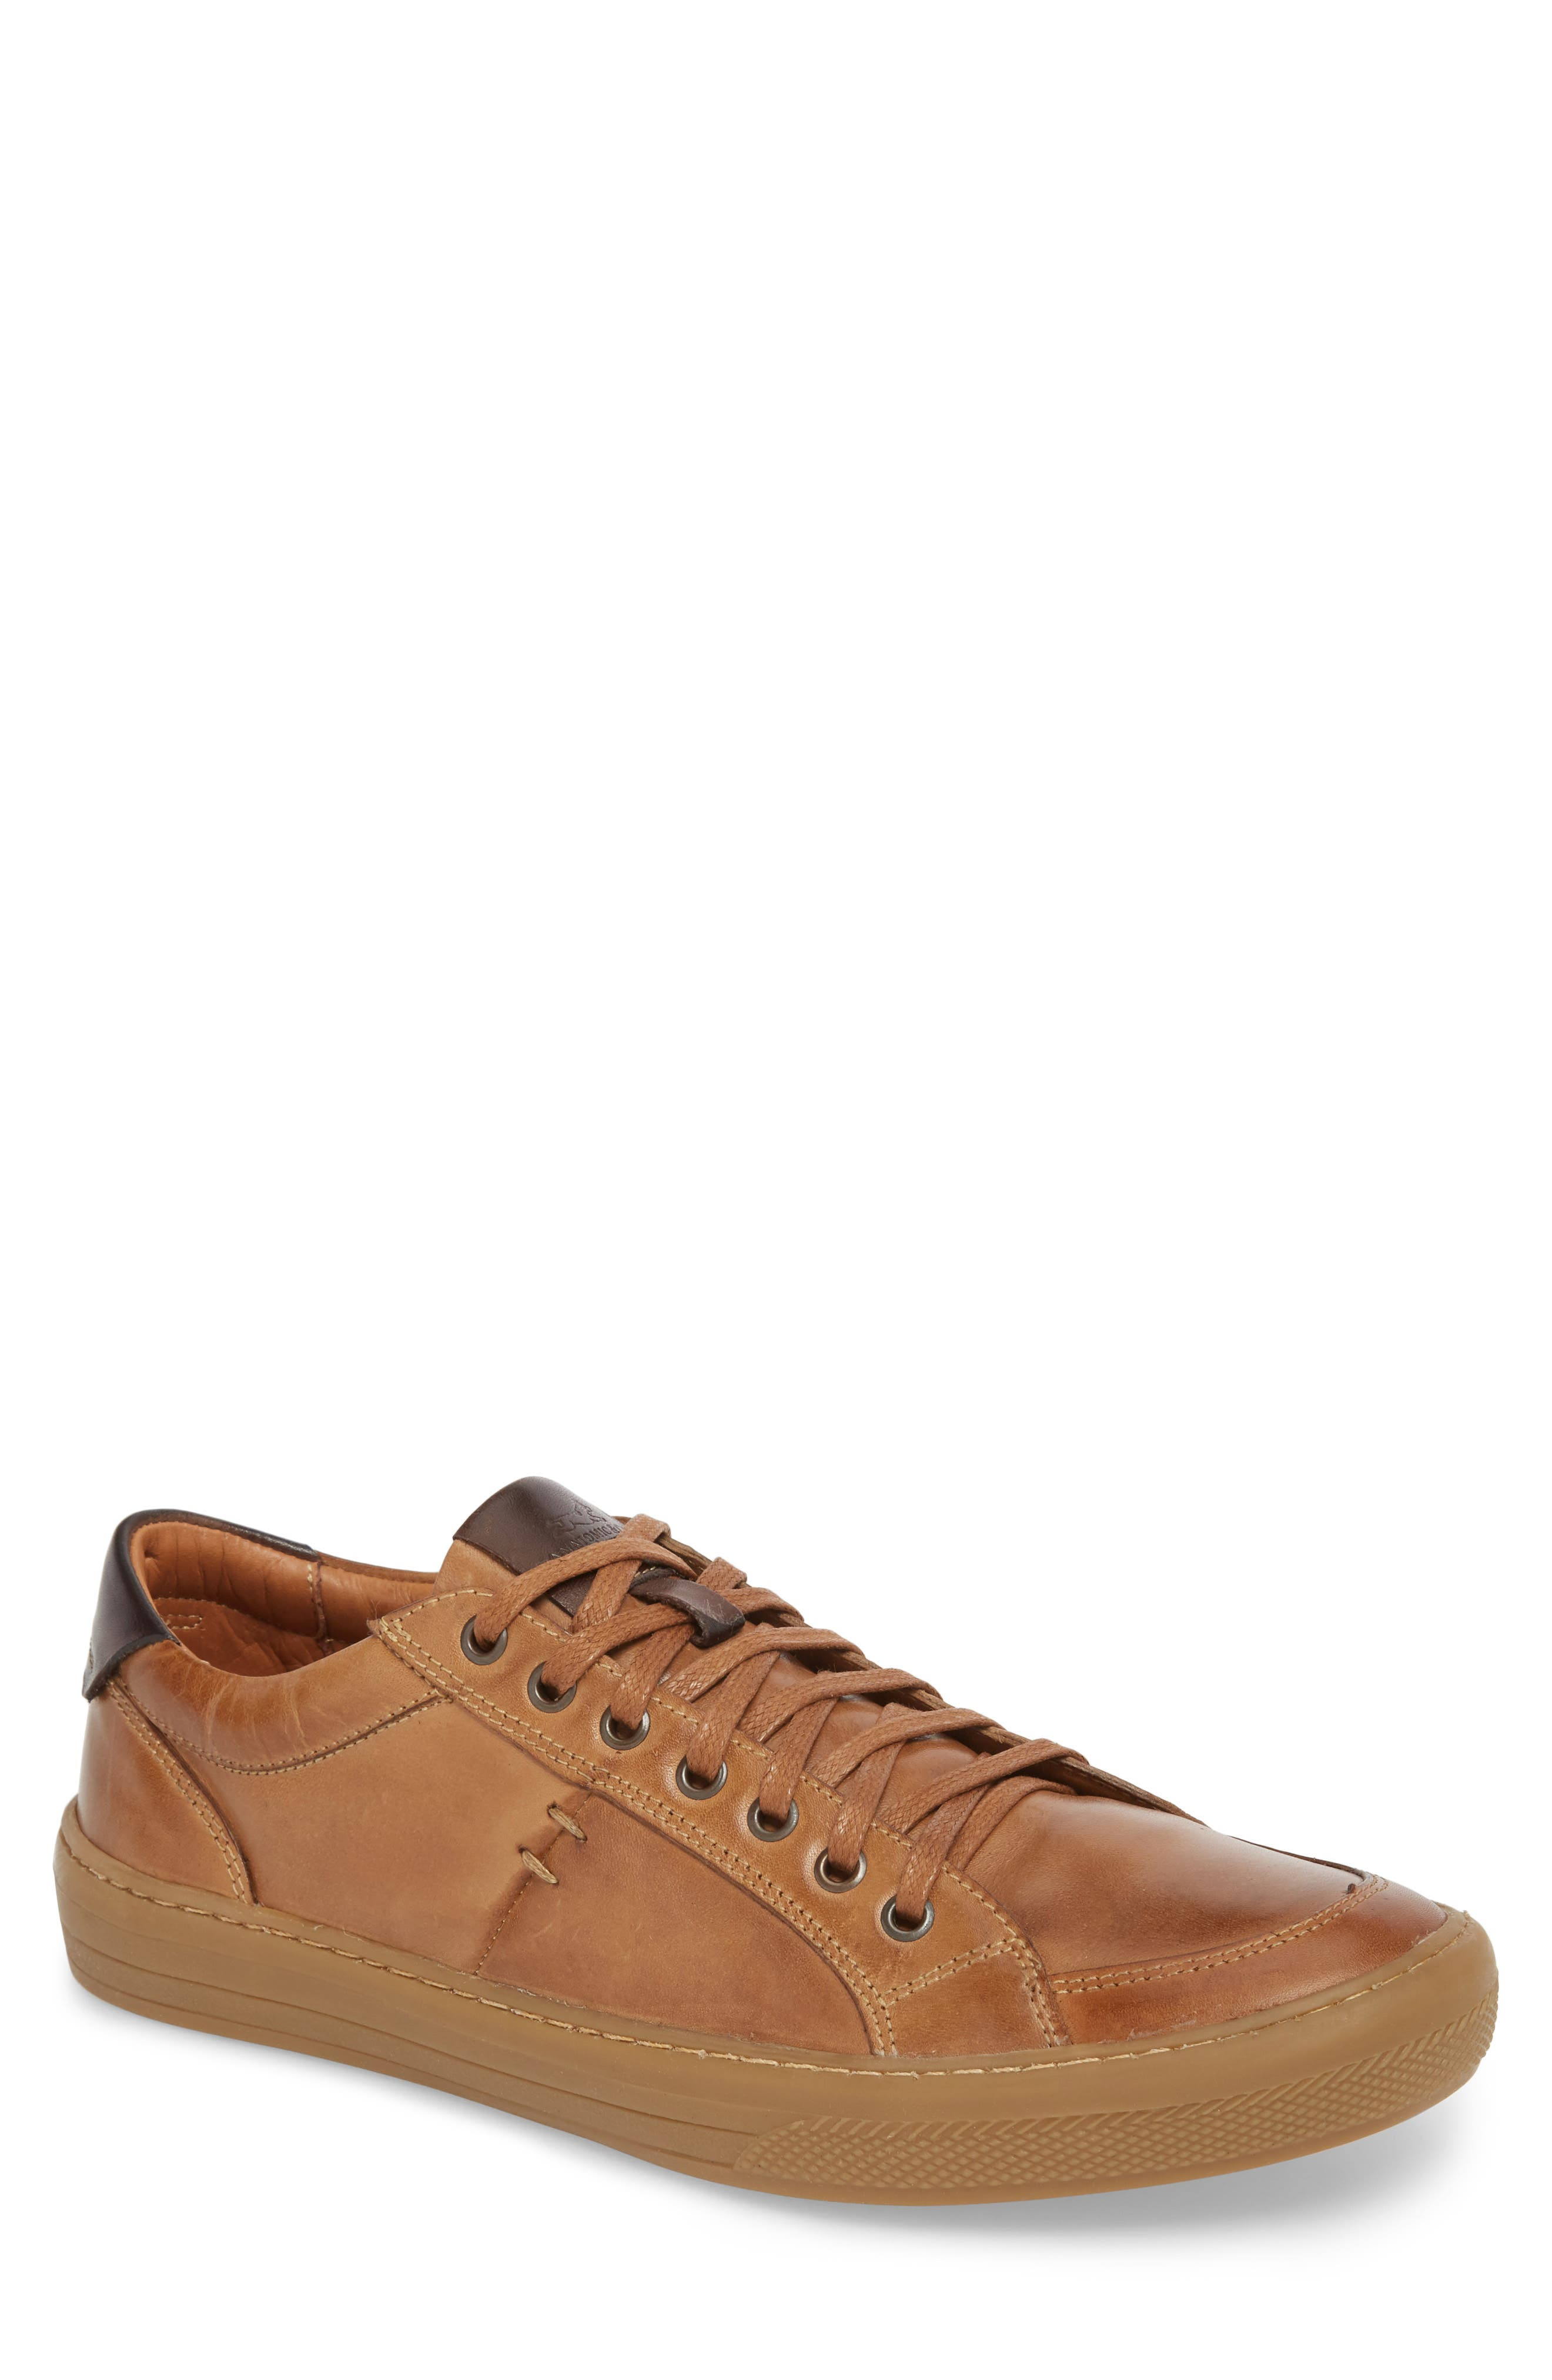 Bilac Low Top Sneaker,                         Main,                         color, Touch Bronze/ Castanho Leather